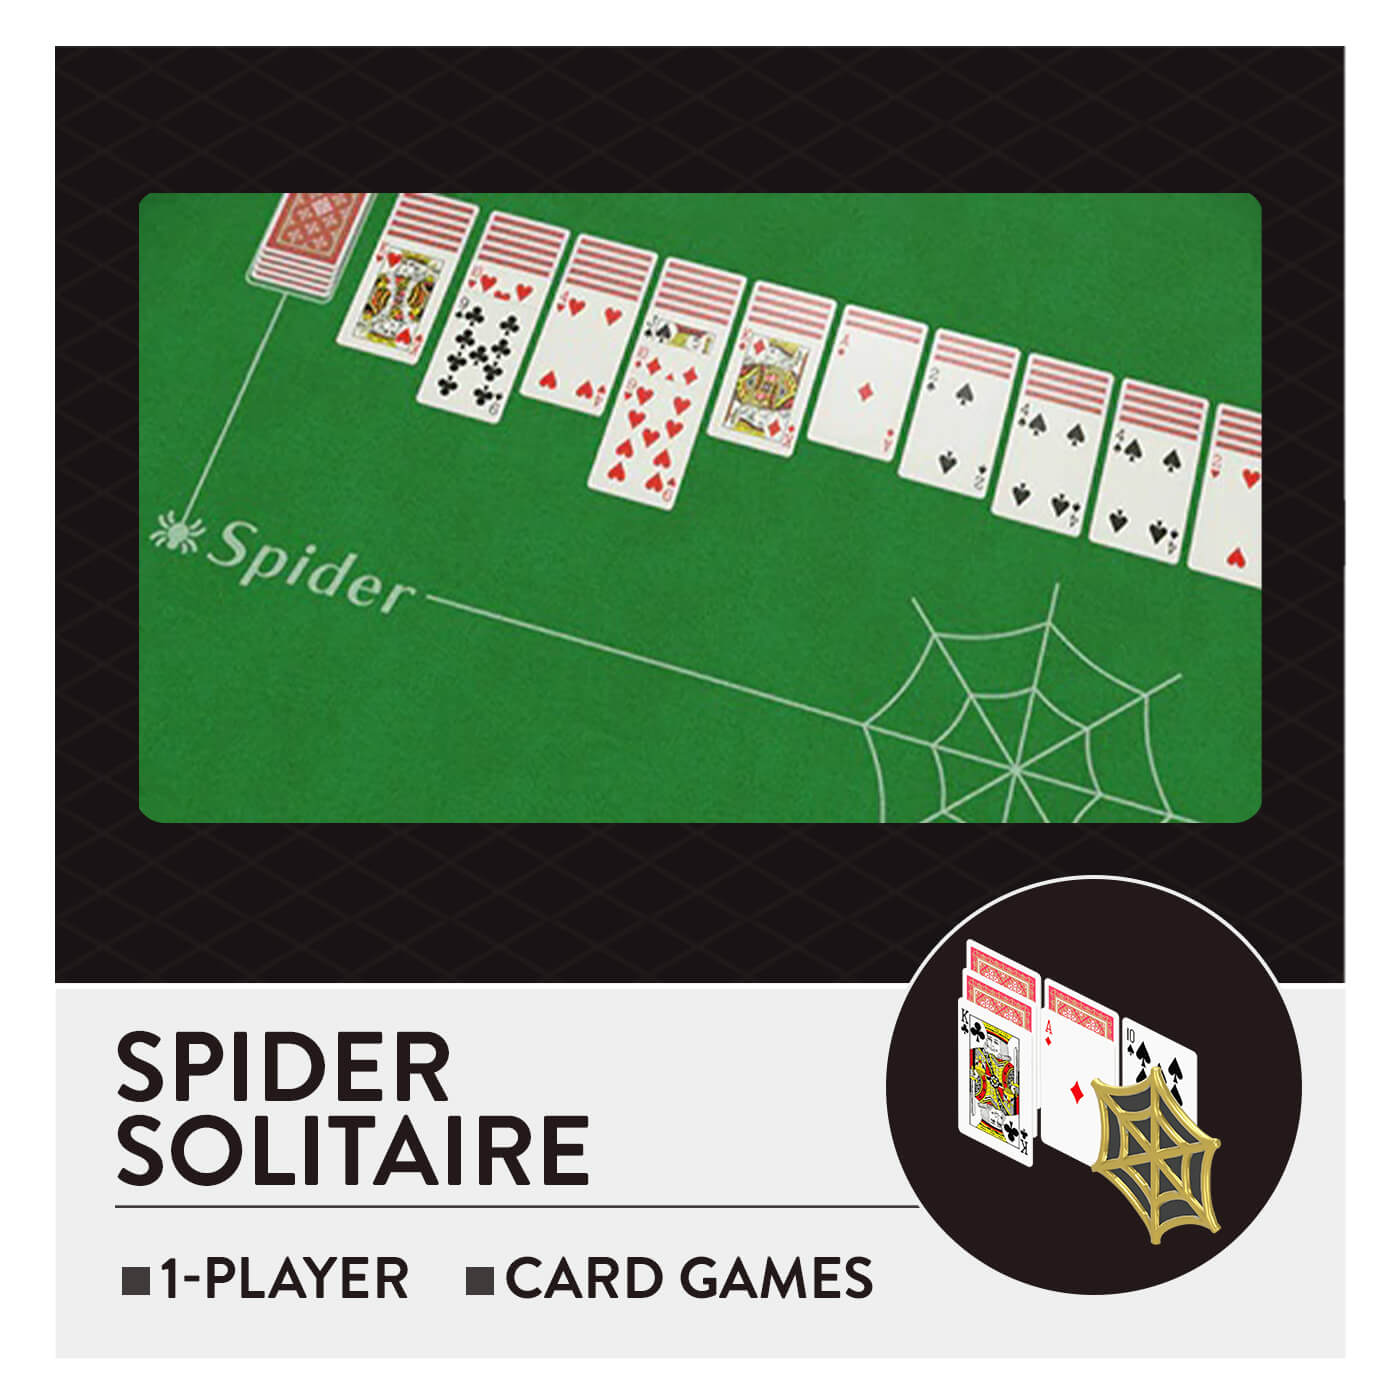 51 Worldwide Games - Spider Solitaire